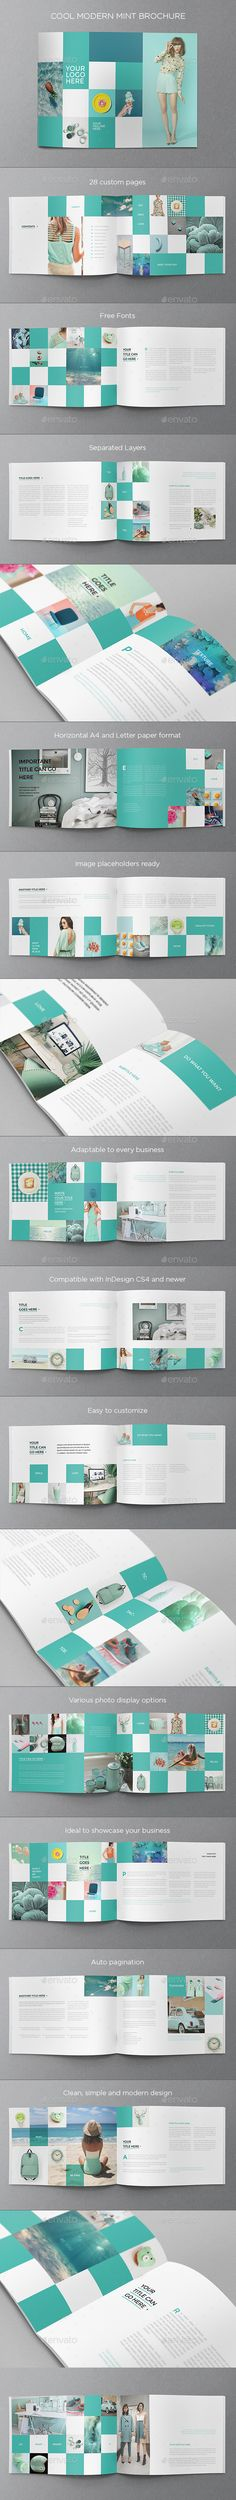 Cool Minimal Mint Brochure — InDesign INDD #brochure #creative • Available here → https://graphicriver.net/item/cool-minimal-mint-brochure/14763155?ref=pxcr